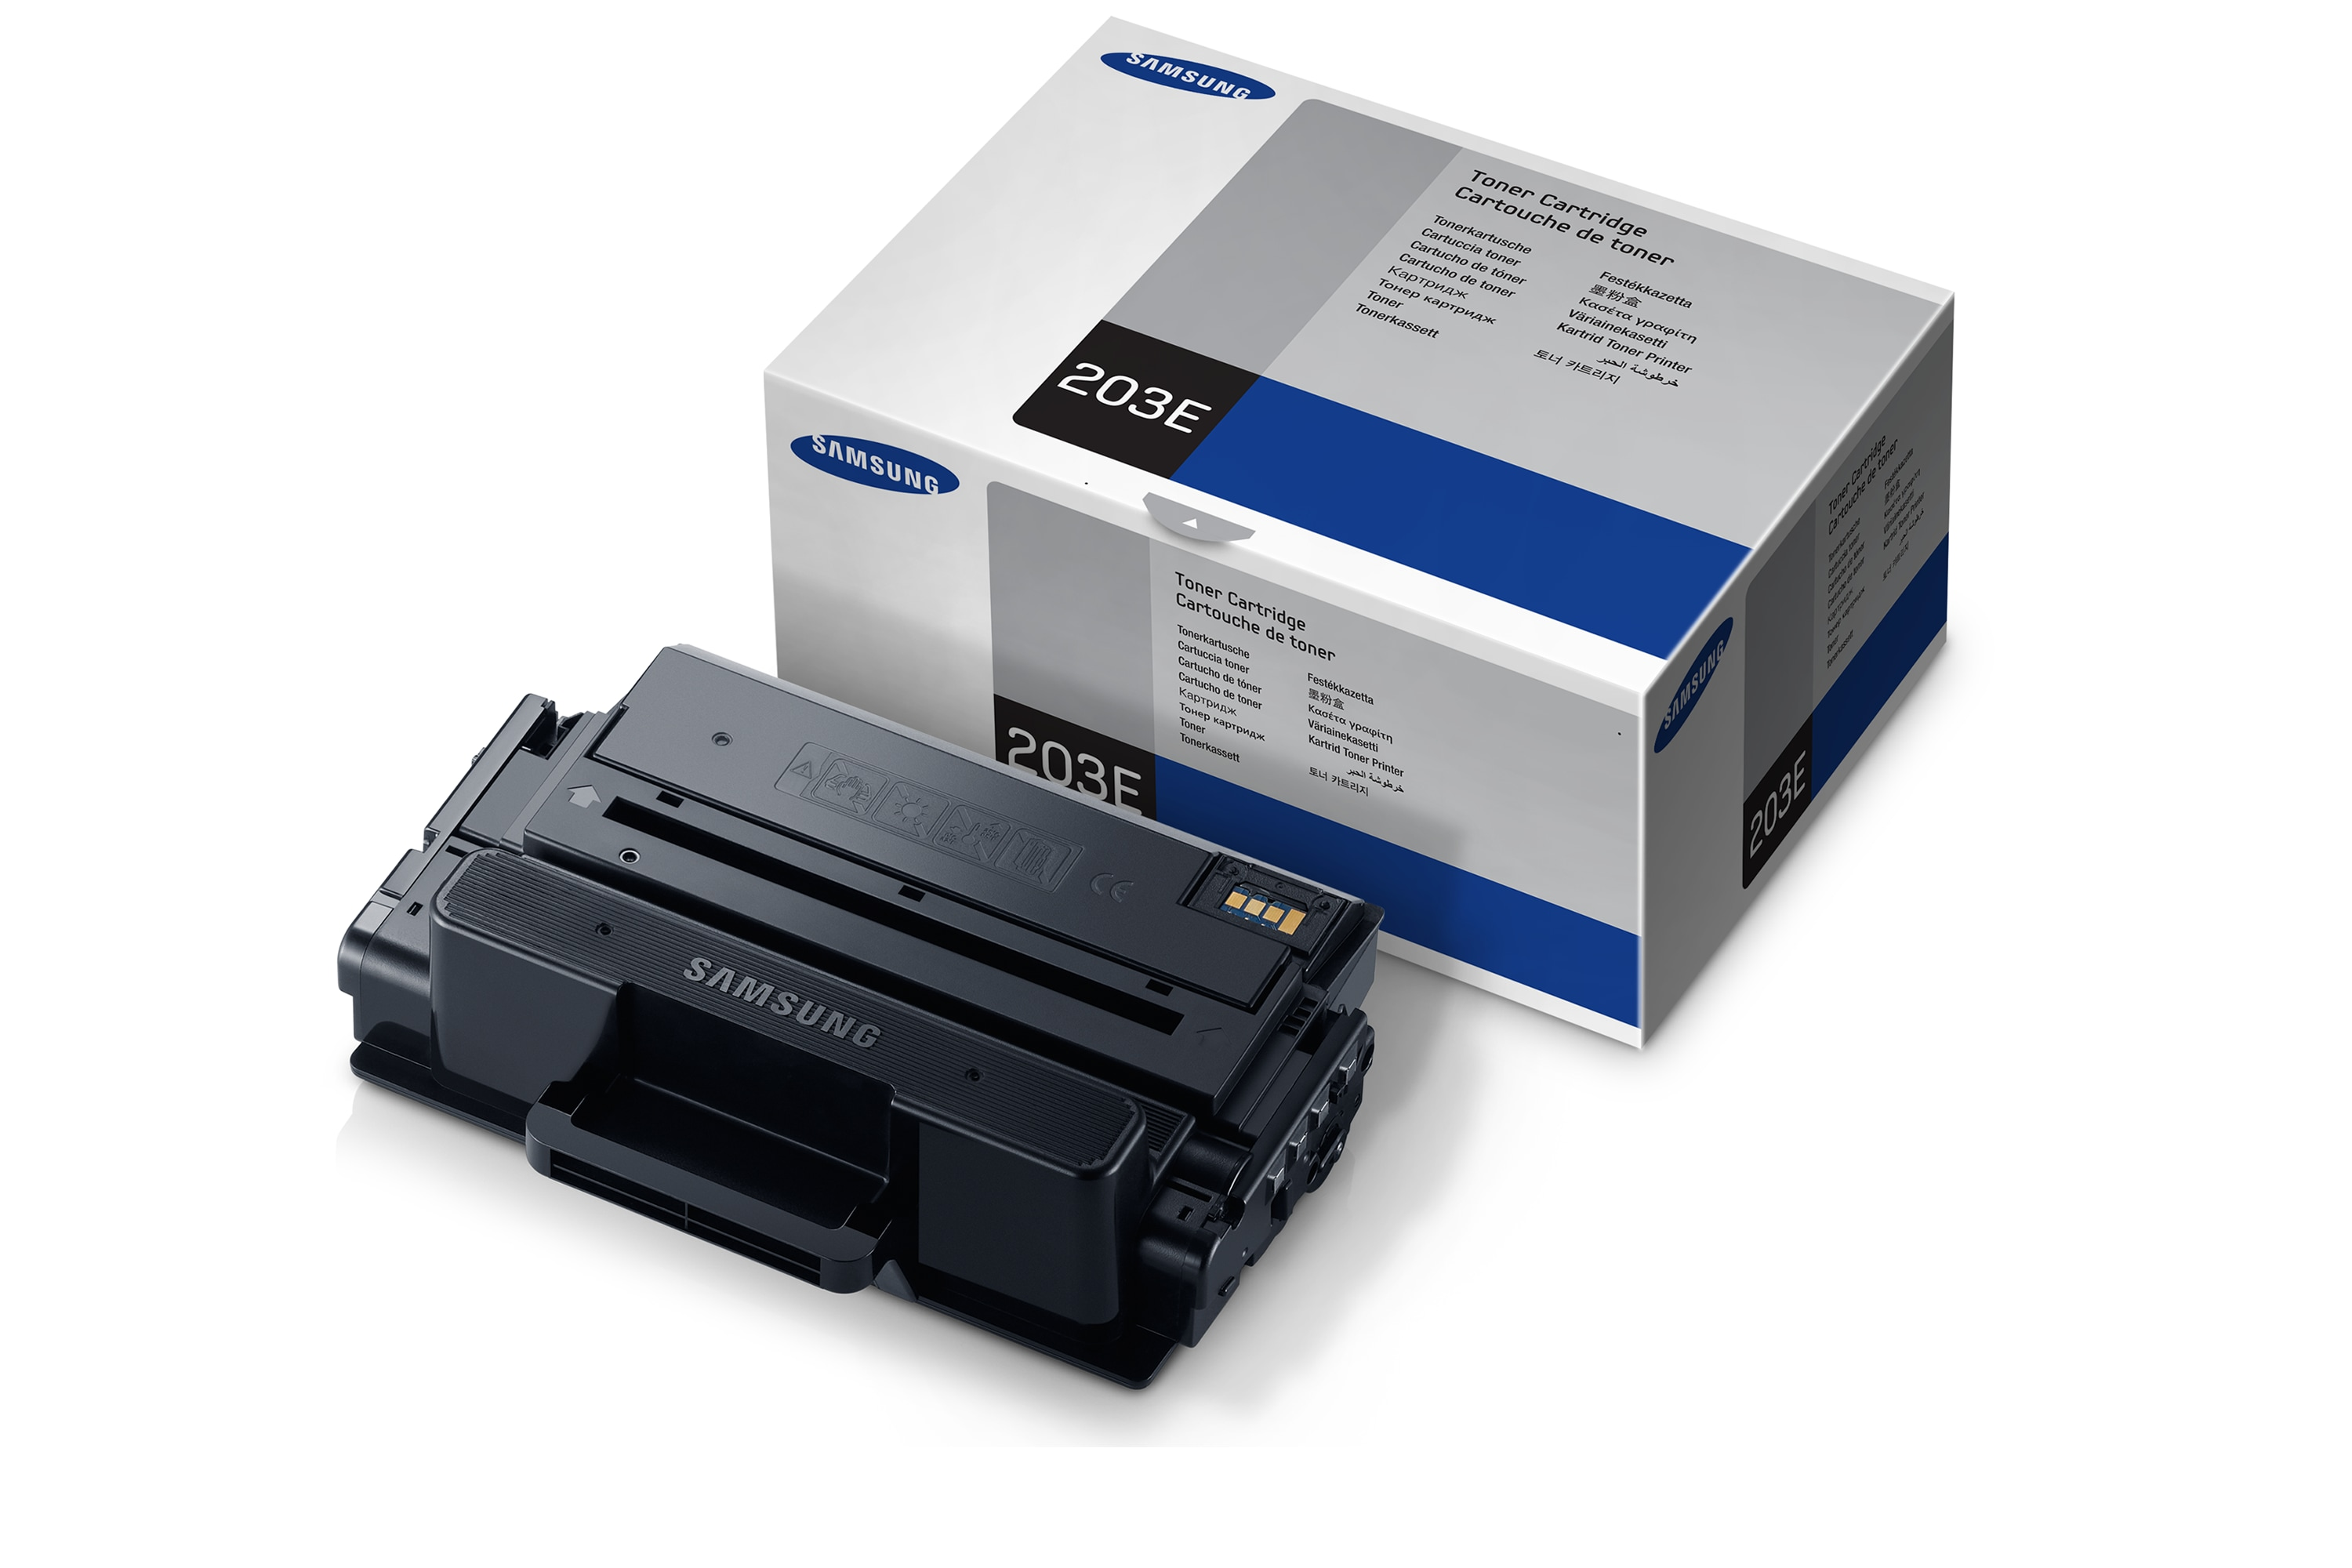 MLT-D203E Dynamic Black